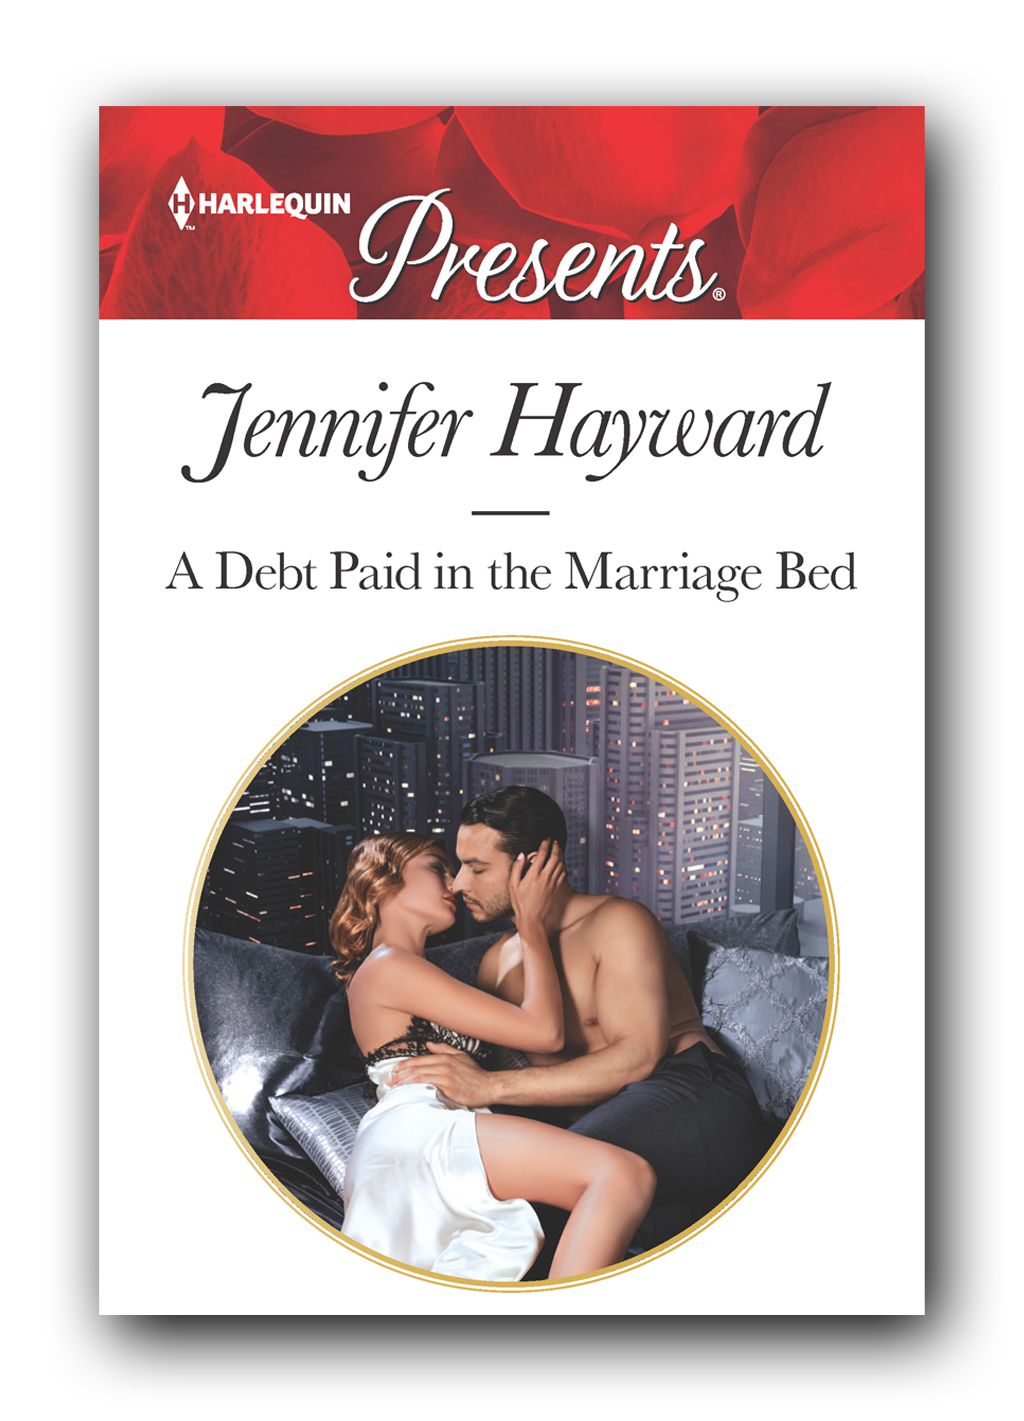 dropS-A_debt_paid_in_the_marraiage_bed